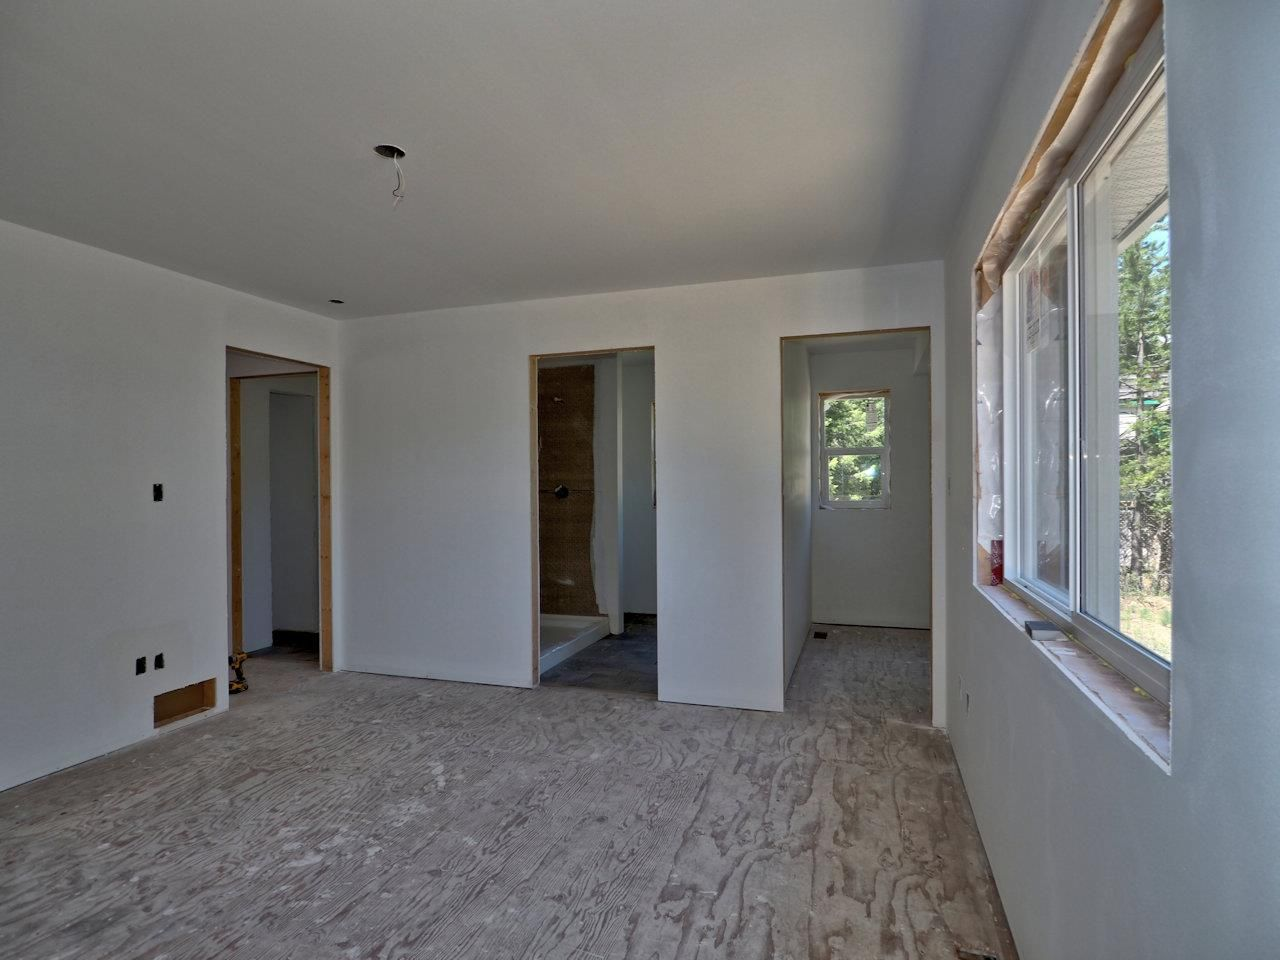 Photo 18: Photos: 5007 KYLLO Road in 108 Mile Ranch: 108 Ranch House for sale (100 Mile House (Zone 10))  : MLS®# R2464127